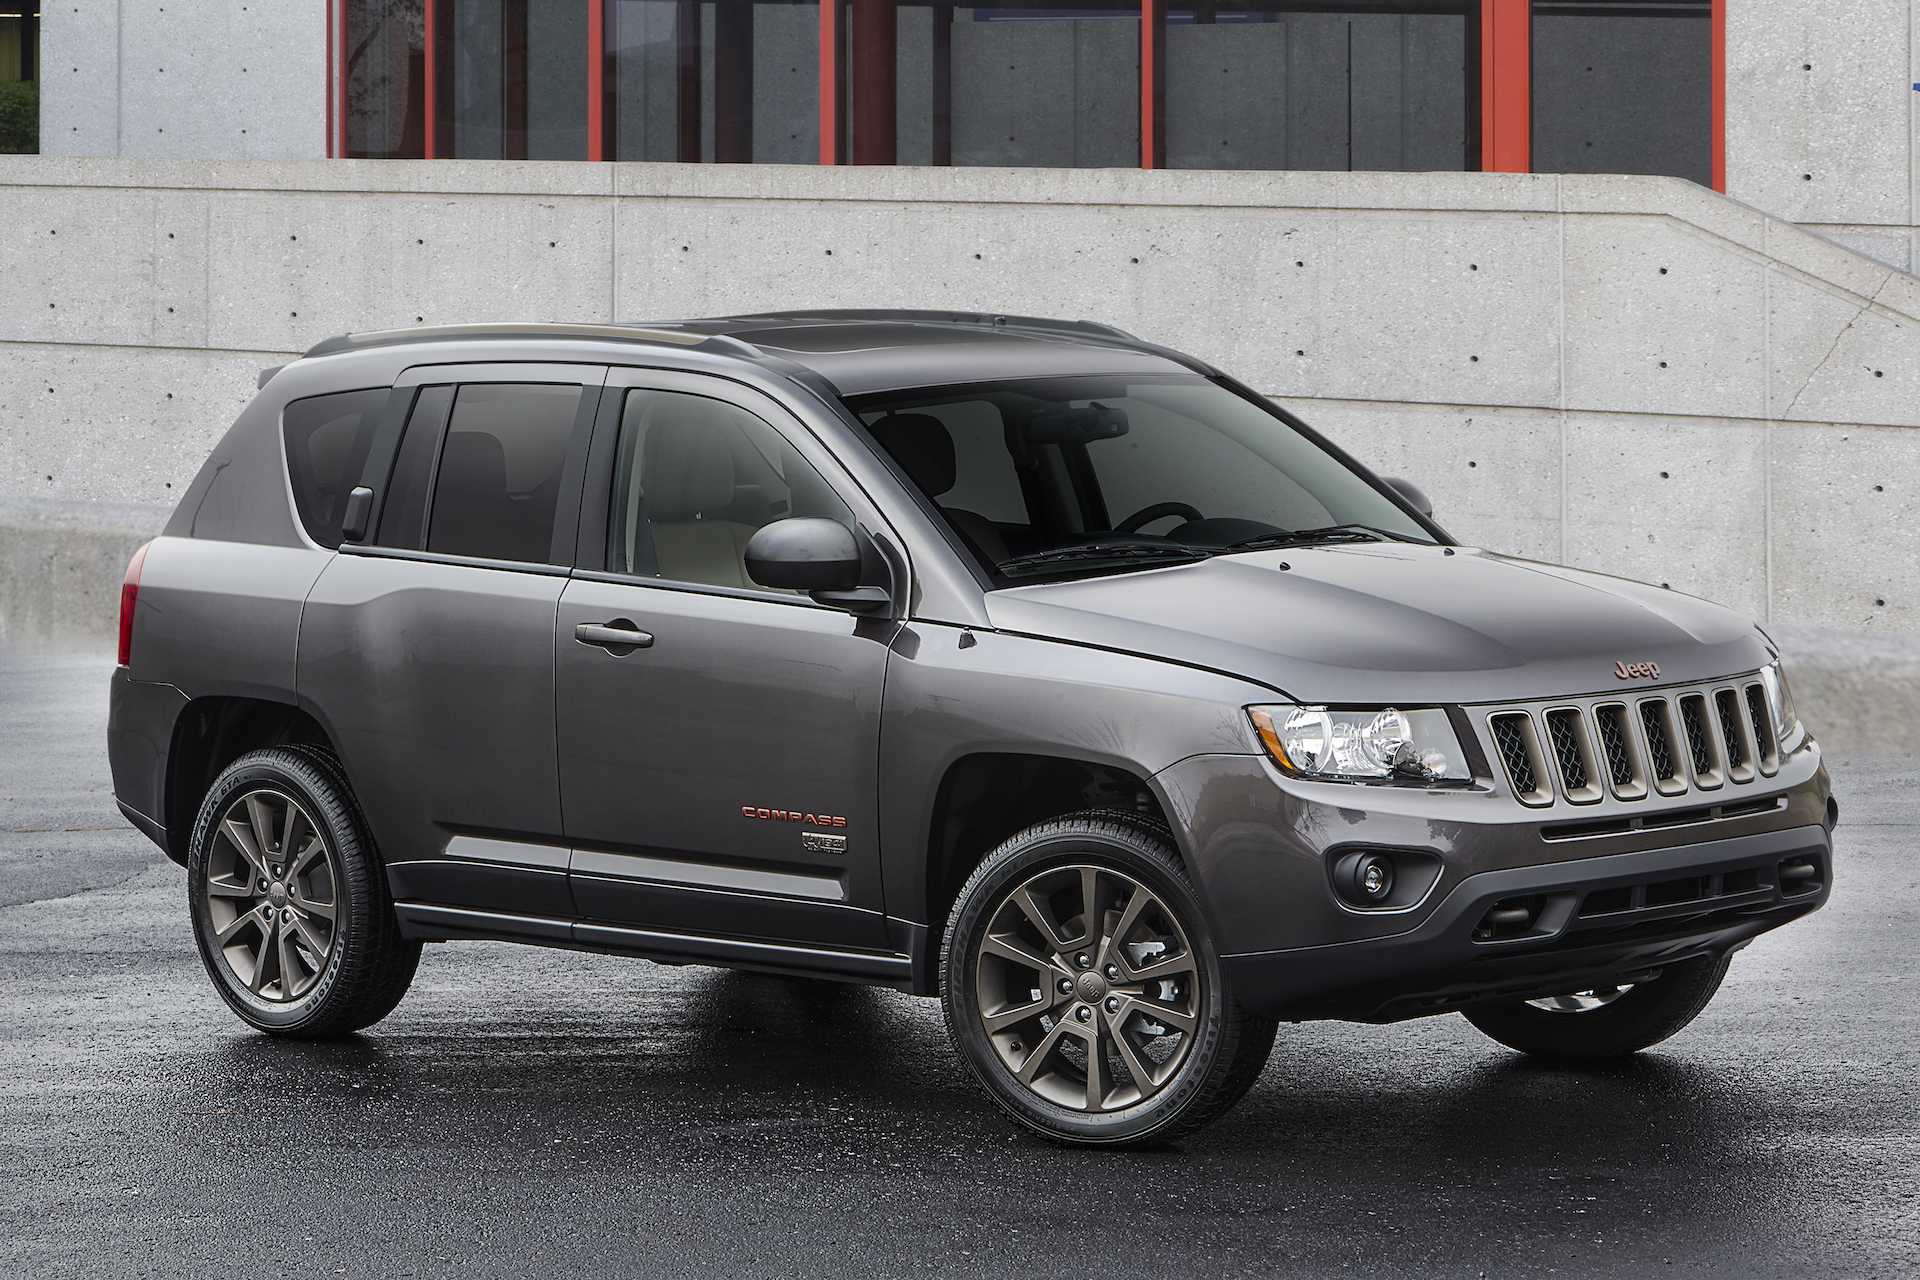 Audi Of Atlanta >> 2017 Jeep Compass Review, Ratings, Specs, Prices, and Photos - The Car Connection